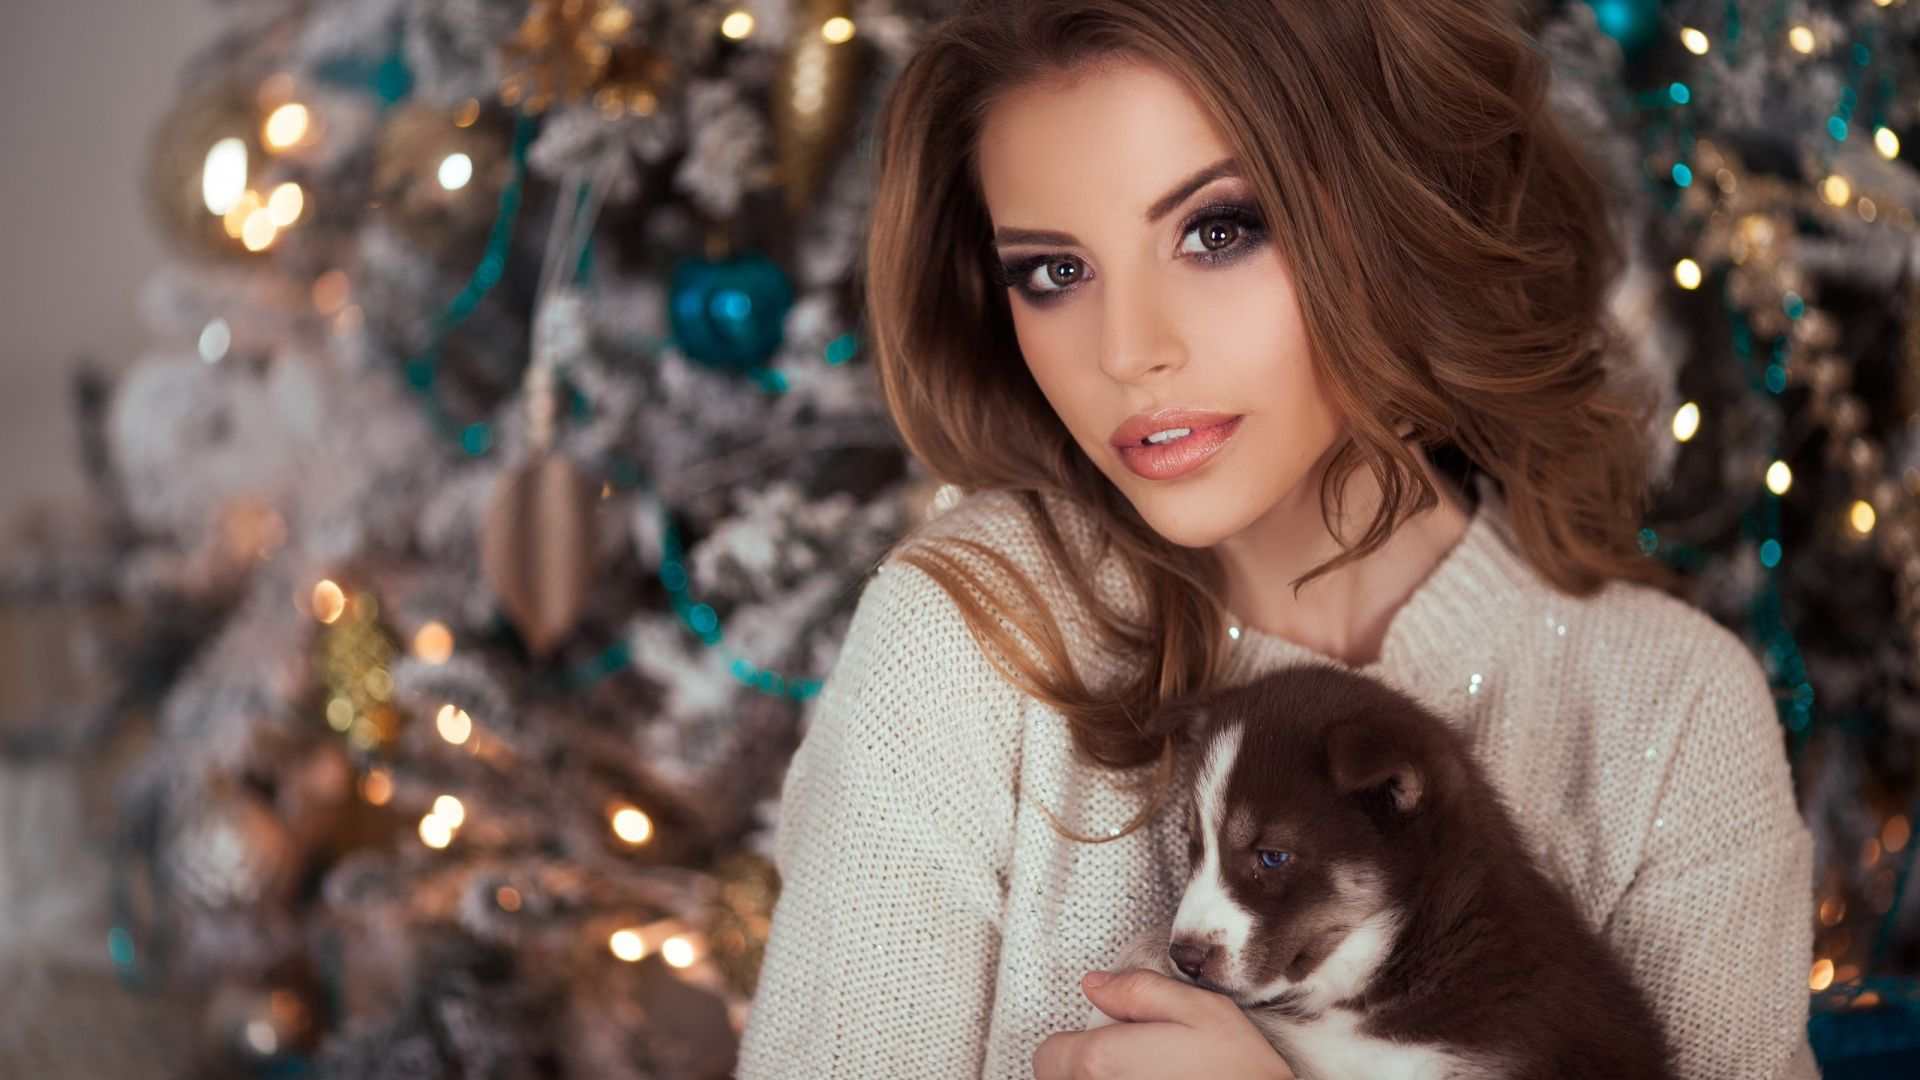 Brunette, woman and puppy, girl model